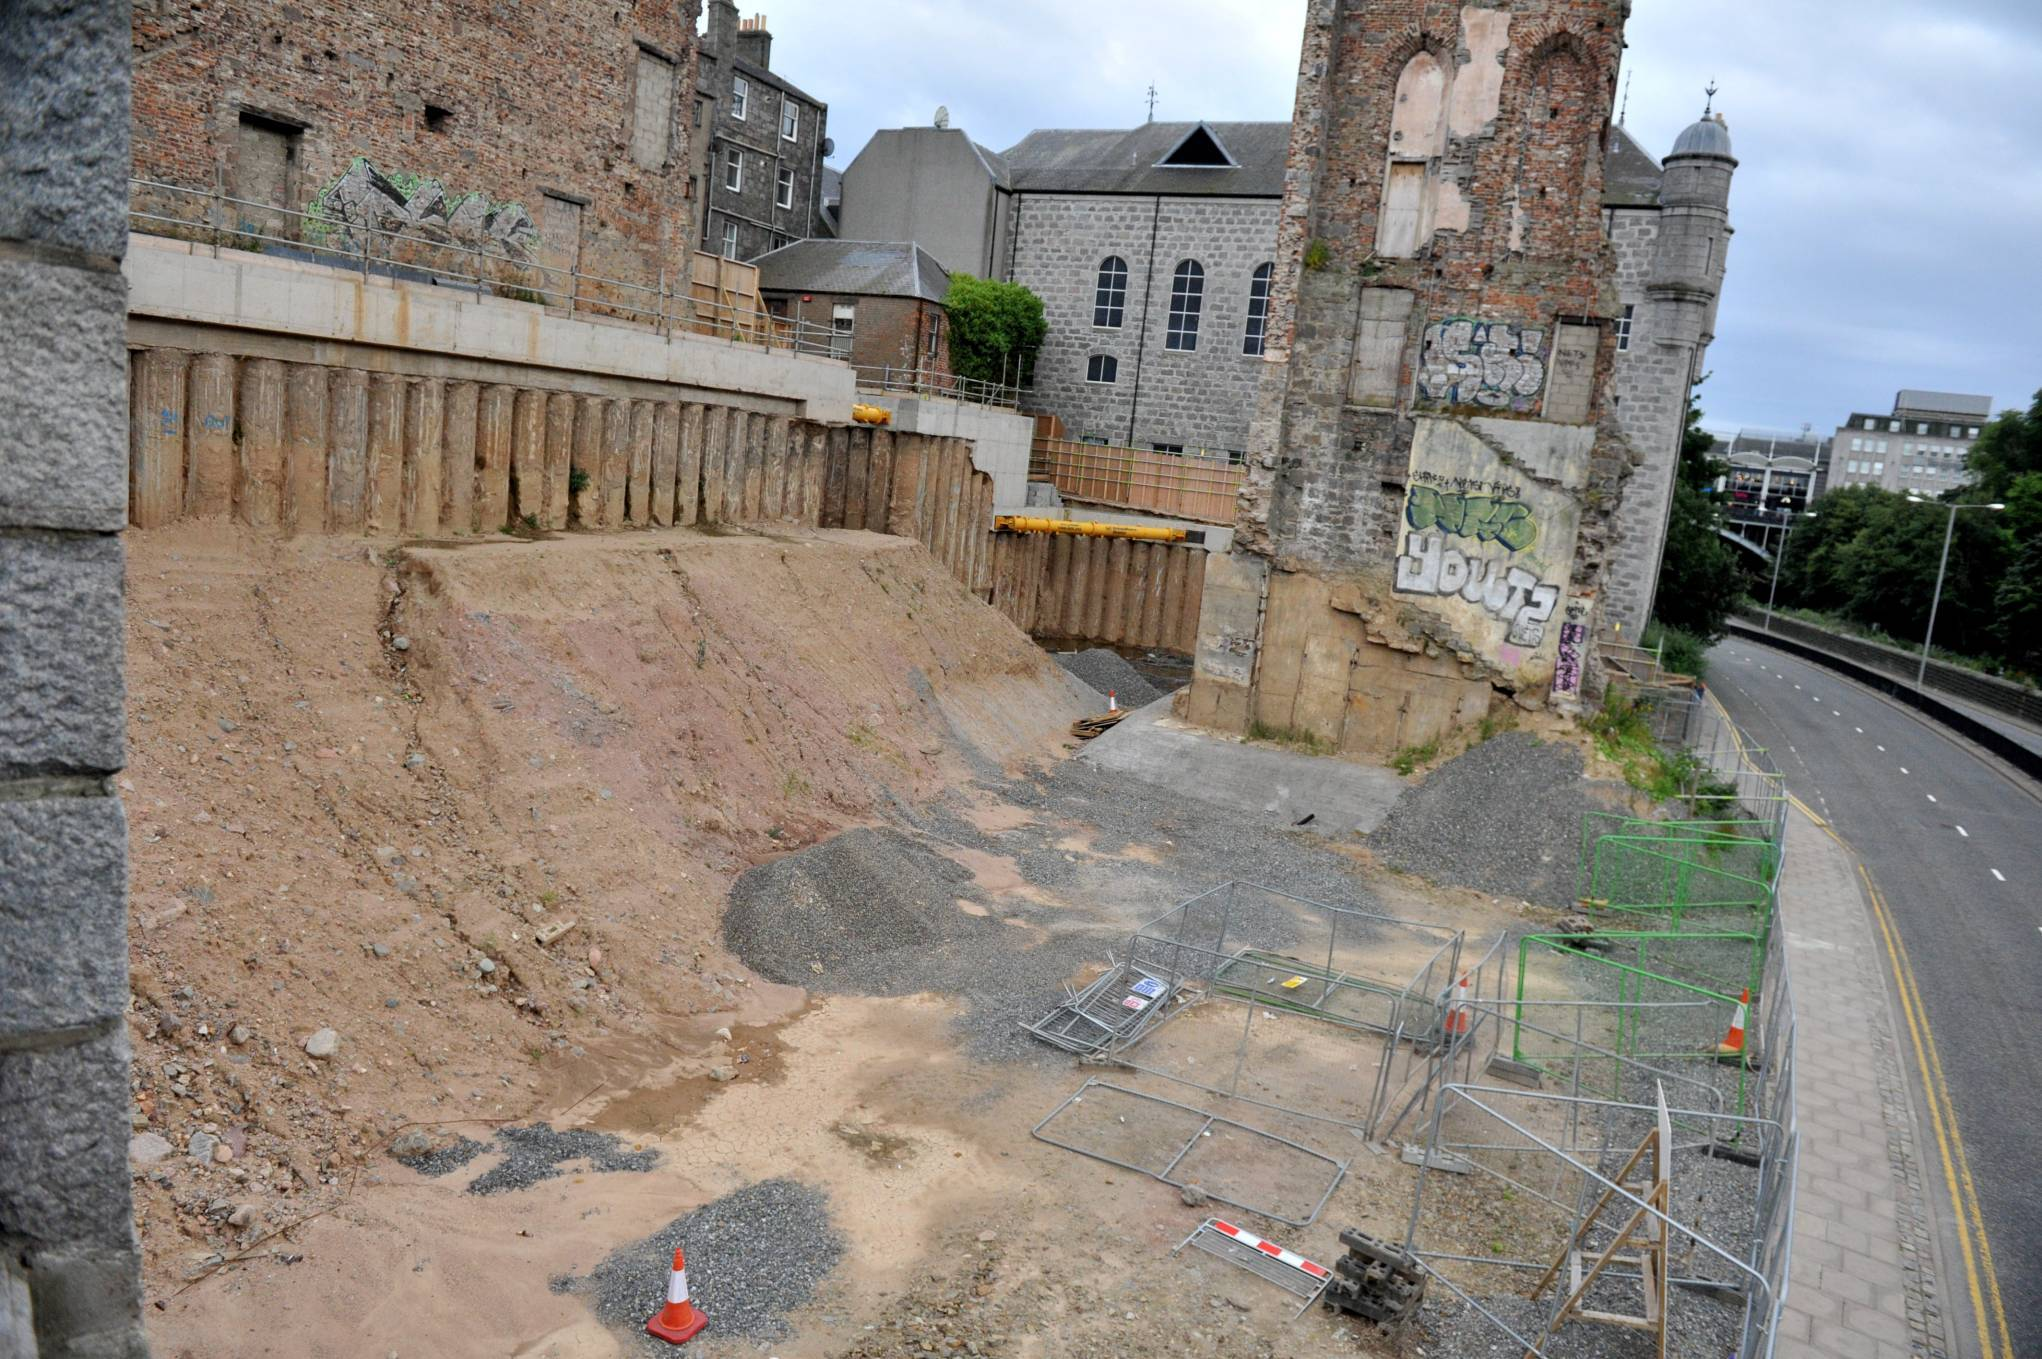 The Triple Kirks' site has already been cleared ahead of work on the new building.